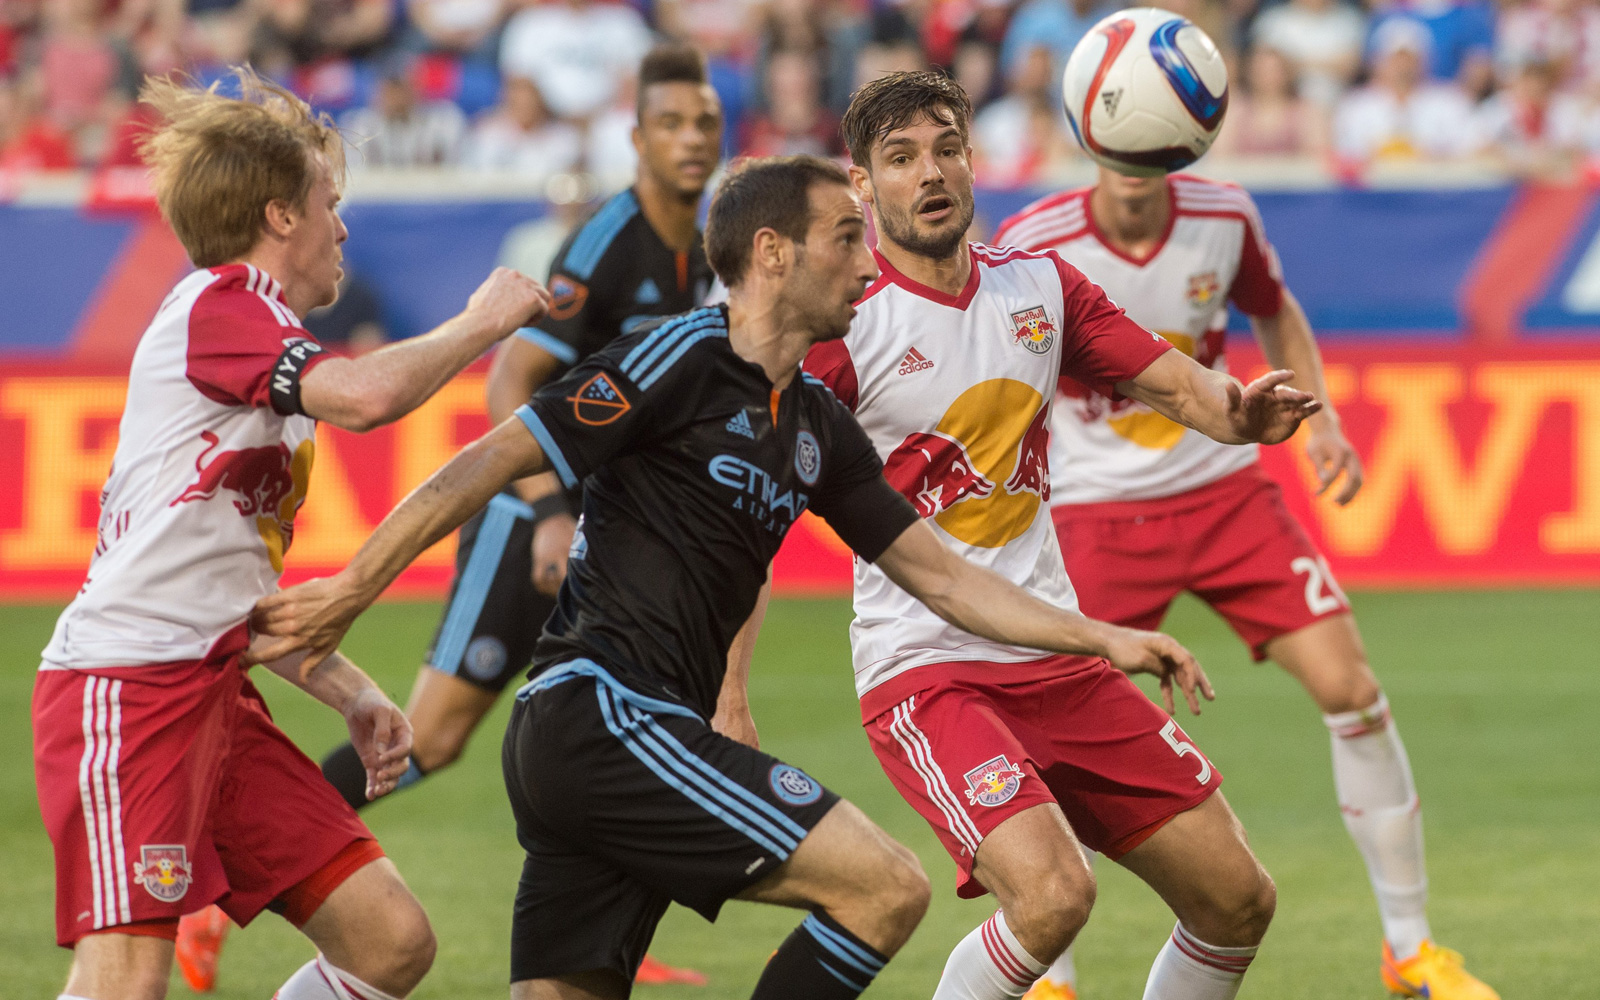 NYCFC's Pablo Alvarez tries to get by a throng of Red Bulls defenders in a 2-1 loss for the MLS expansion club at Red Bull Arena on May 10, 2015.